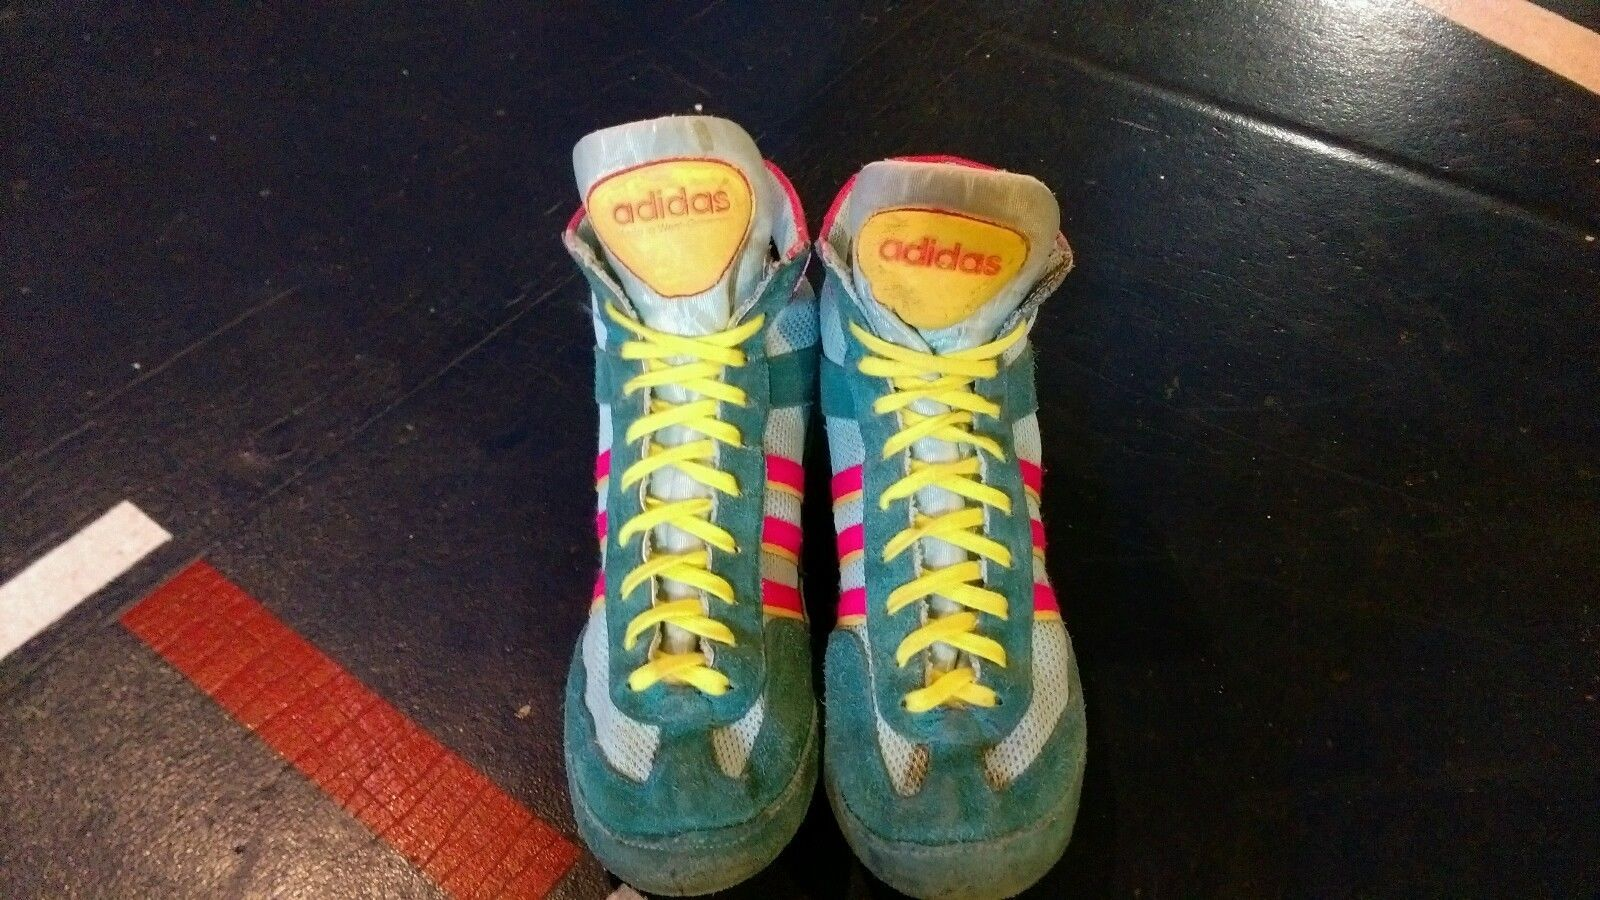 arrives e11b9 b87db Rare Adidas 88 Teal combat speed wrestling shoes   eBay